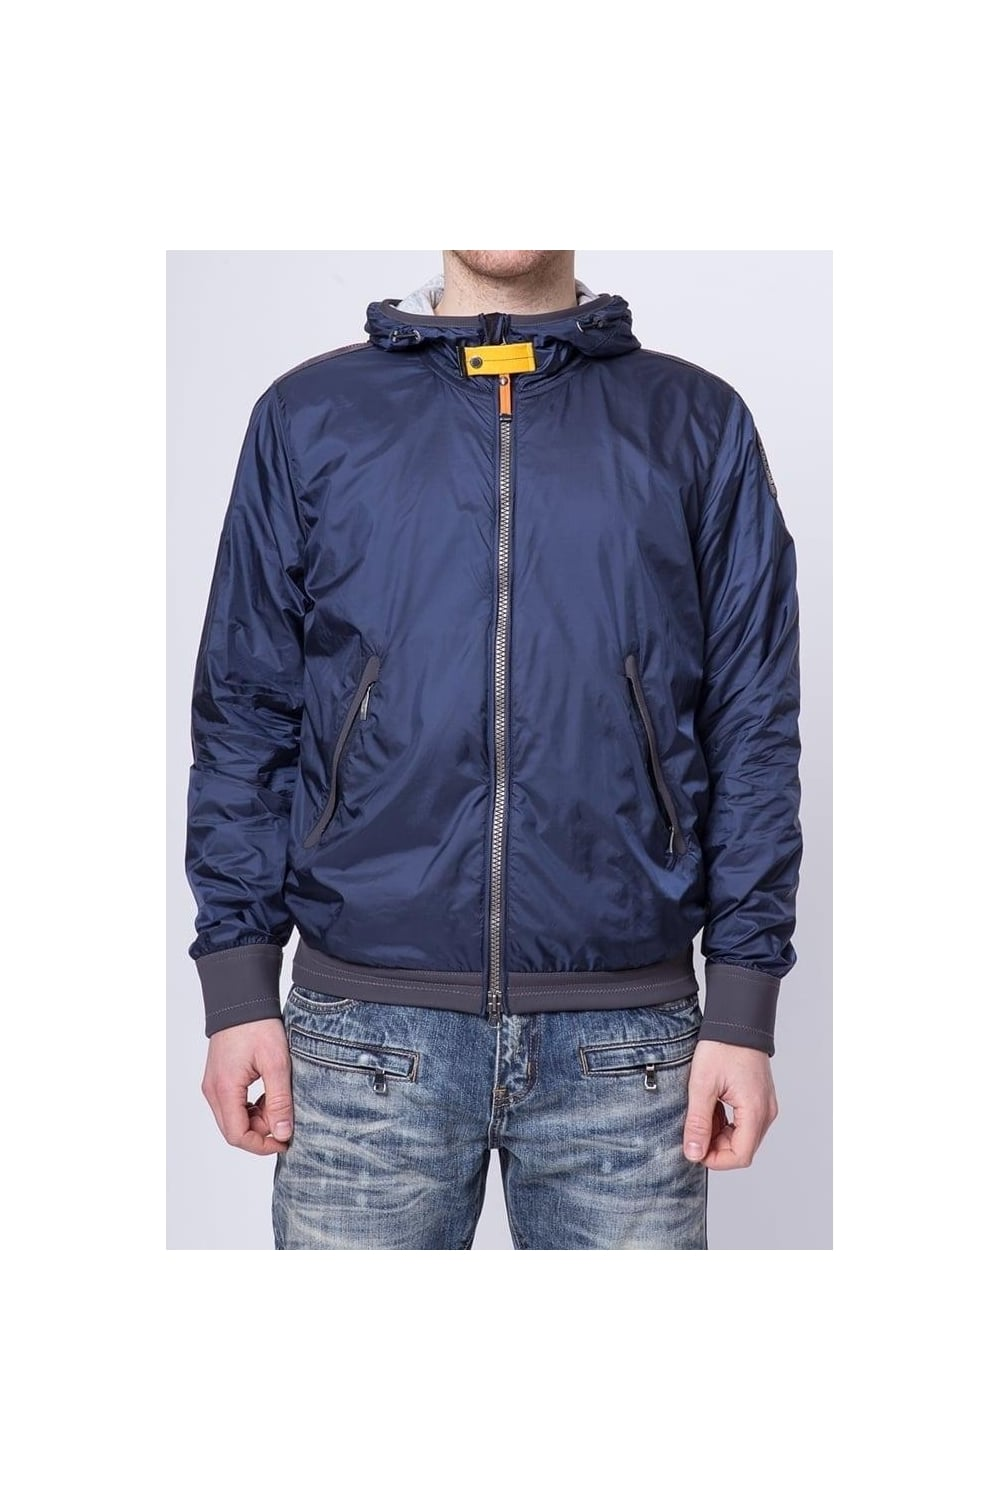 Parajumpers Navy Blue